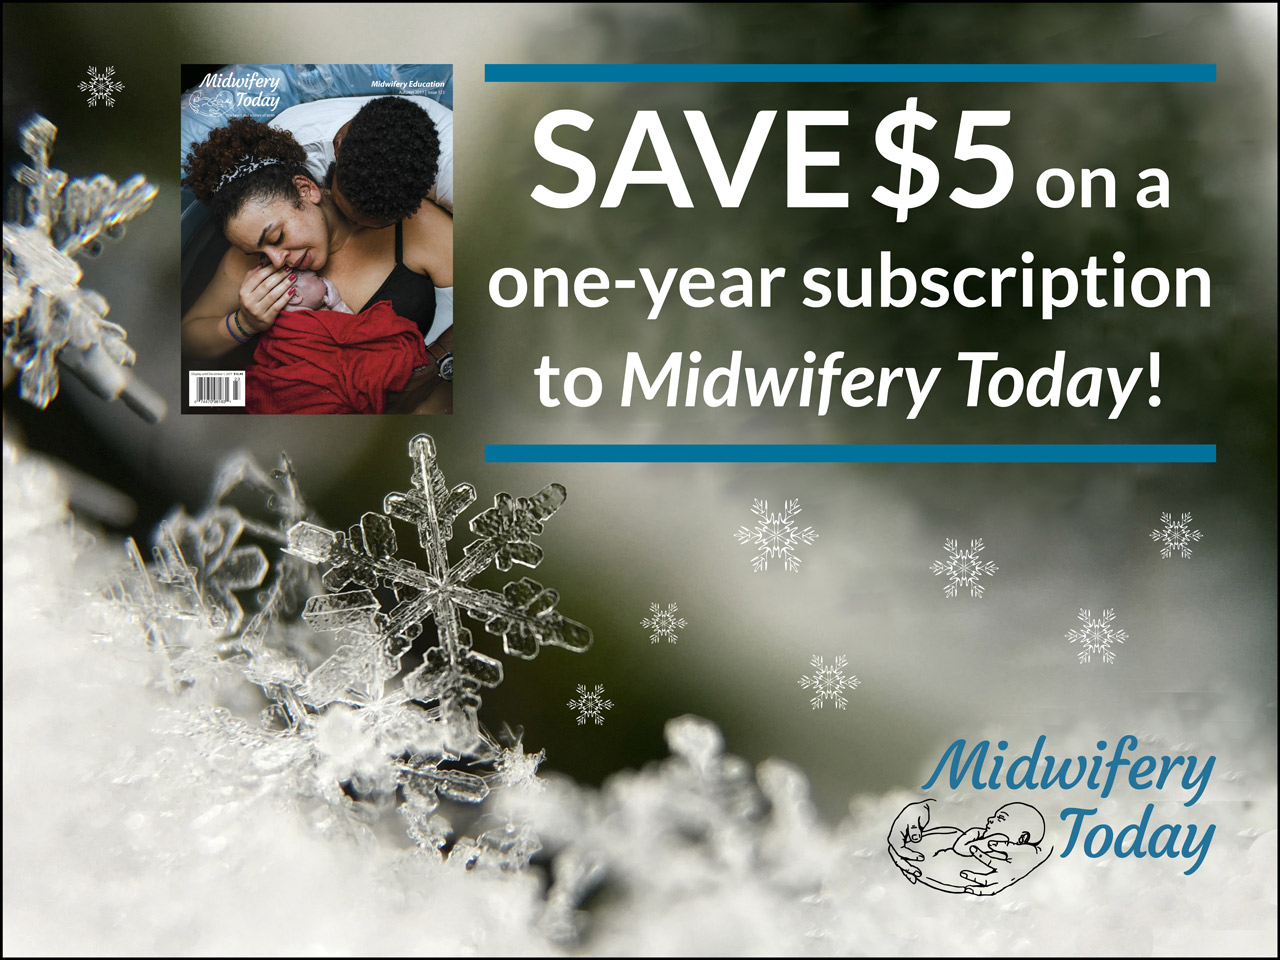 Save $5 on a Midwifery Today subscription